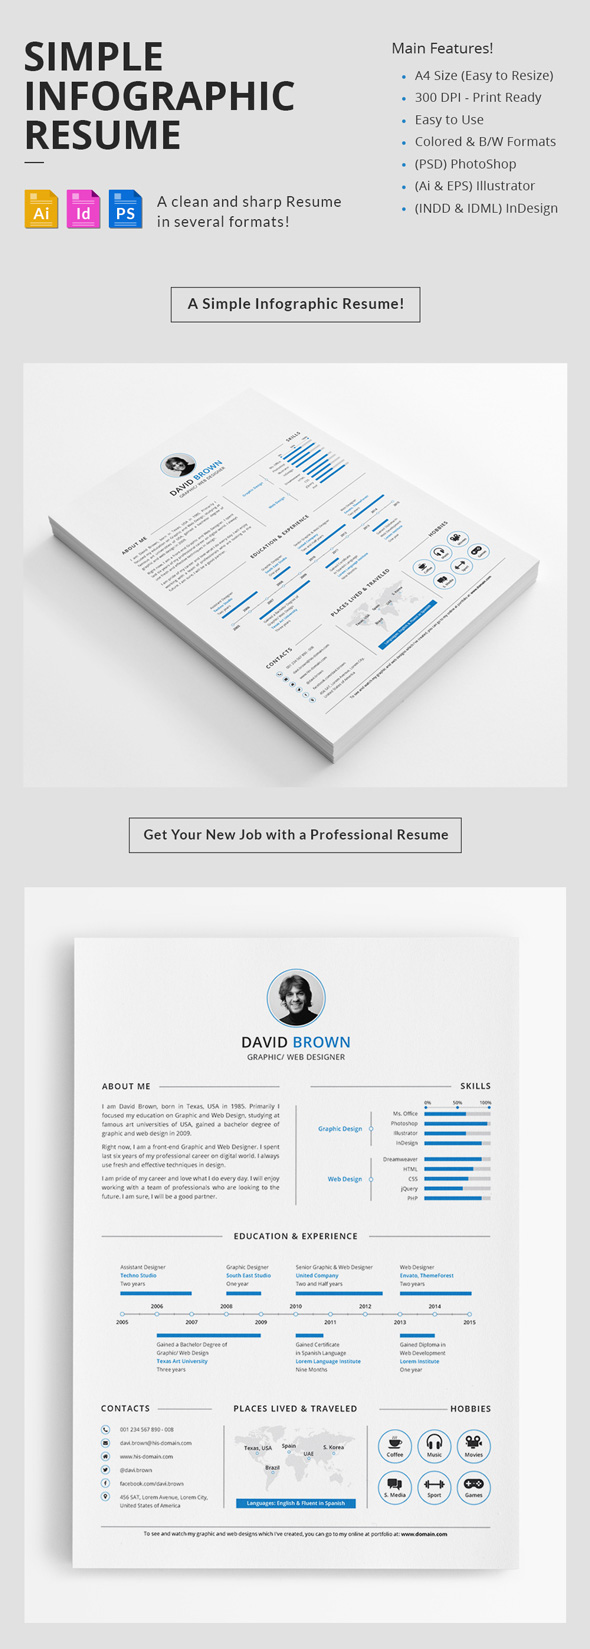 minimal resume template design. Resume Example. Resume CV Cover Letter